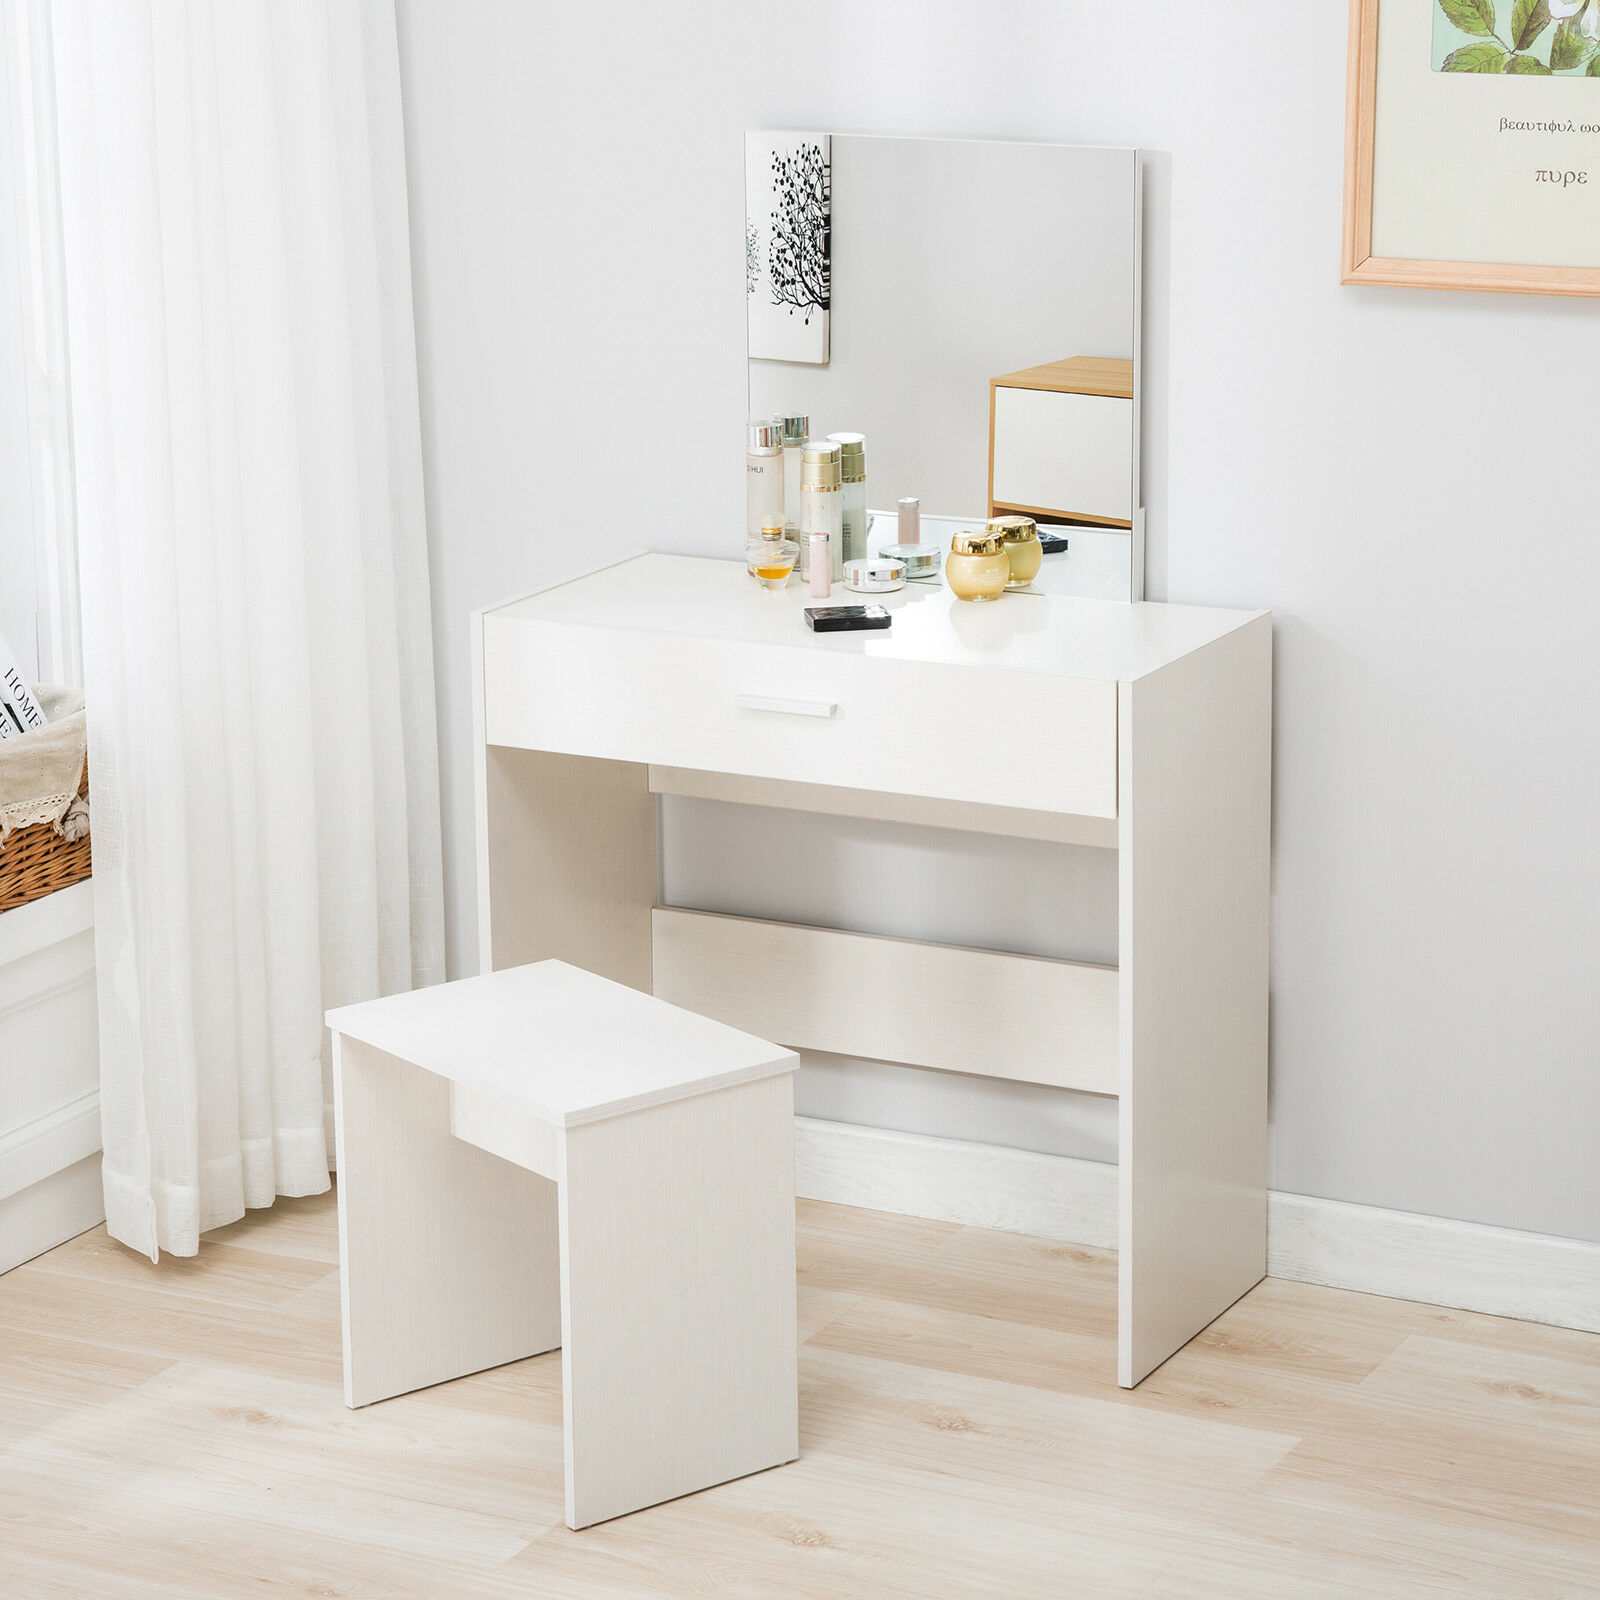 Vanity White Dressing Table Stool Set Makeup Dresser Desk With Mirror Drawer 1 Of 10free Shipping